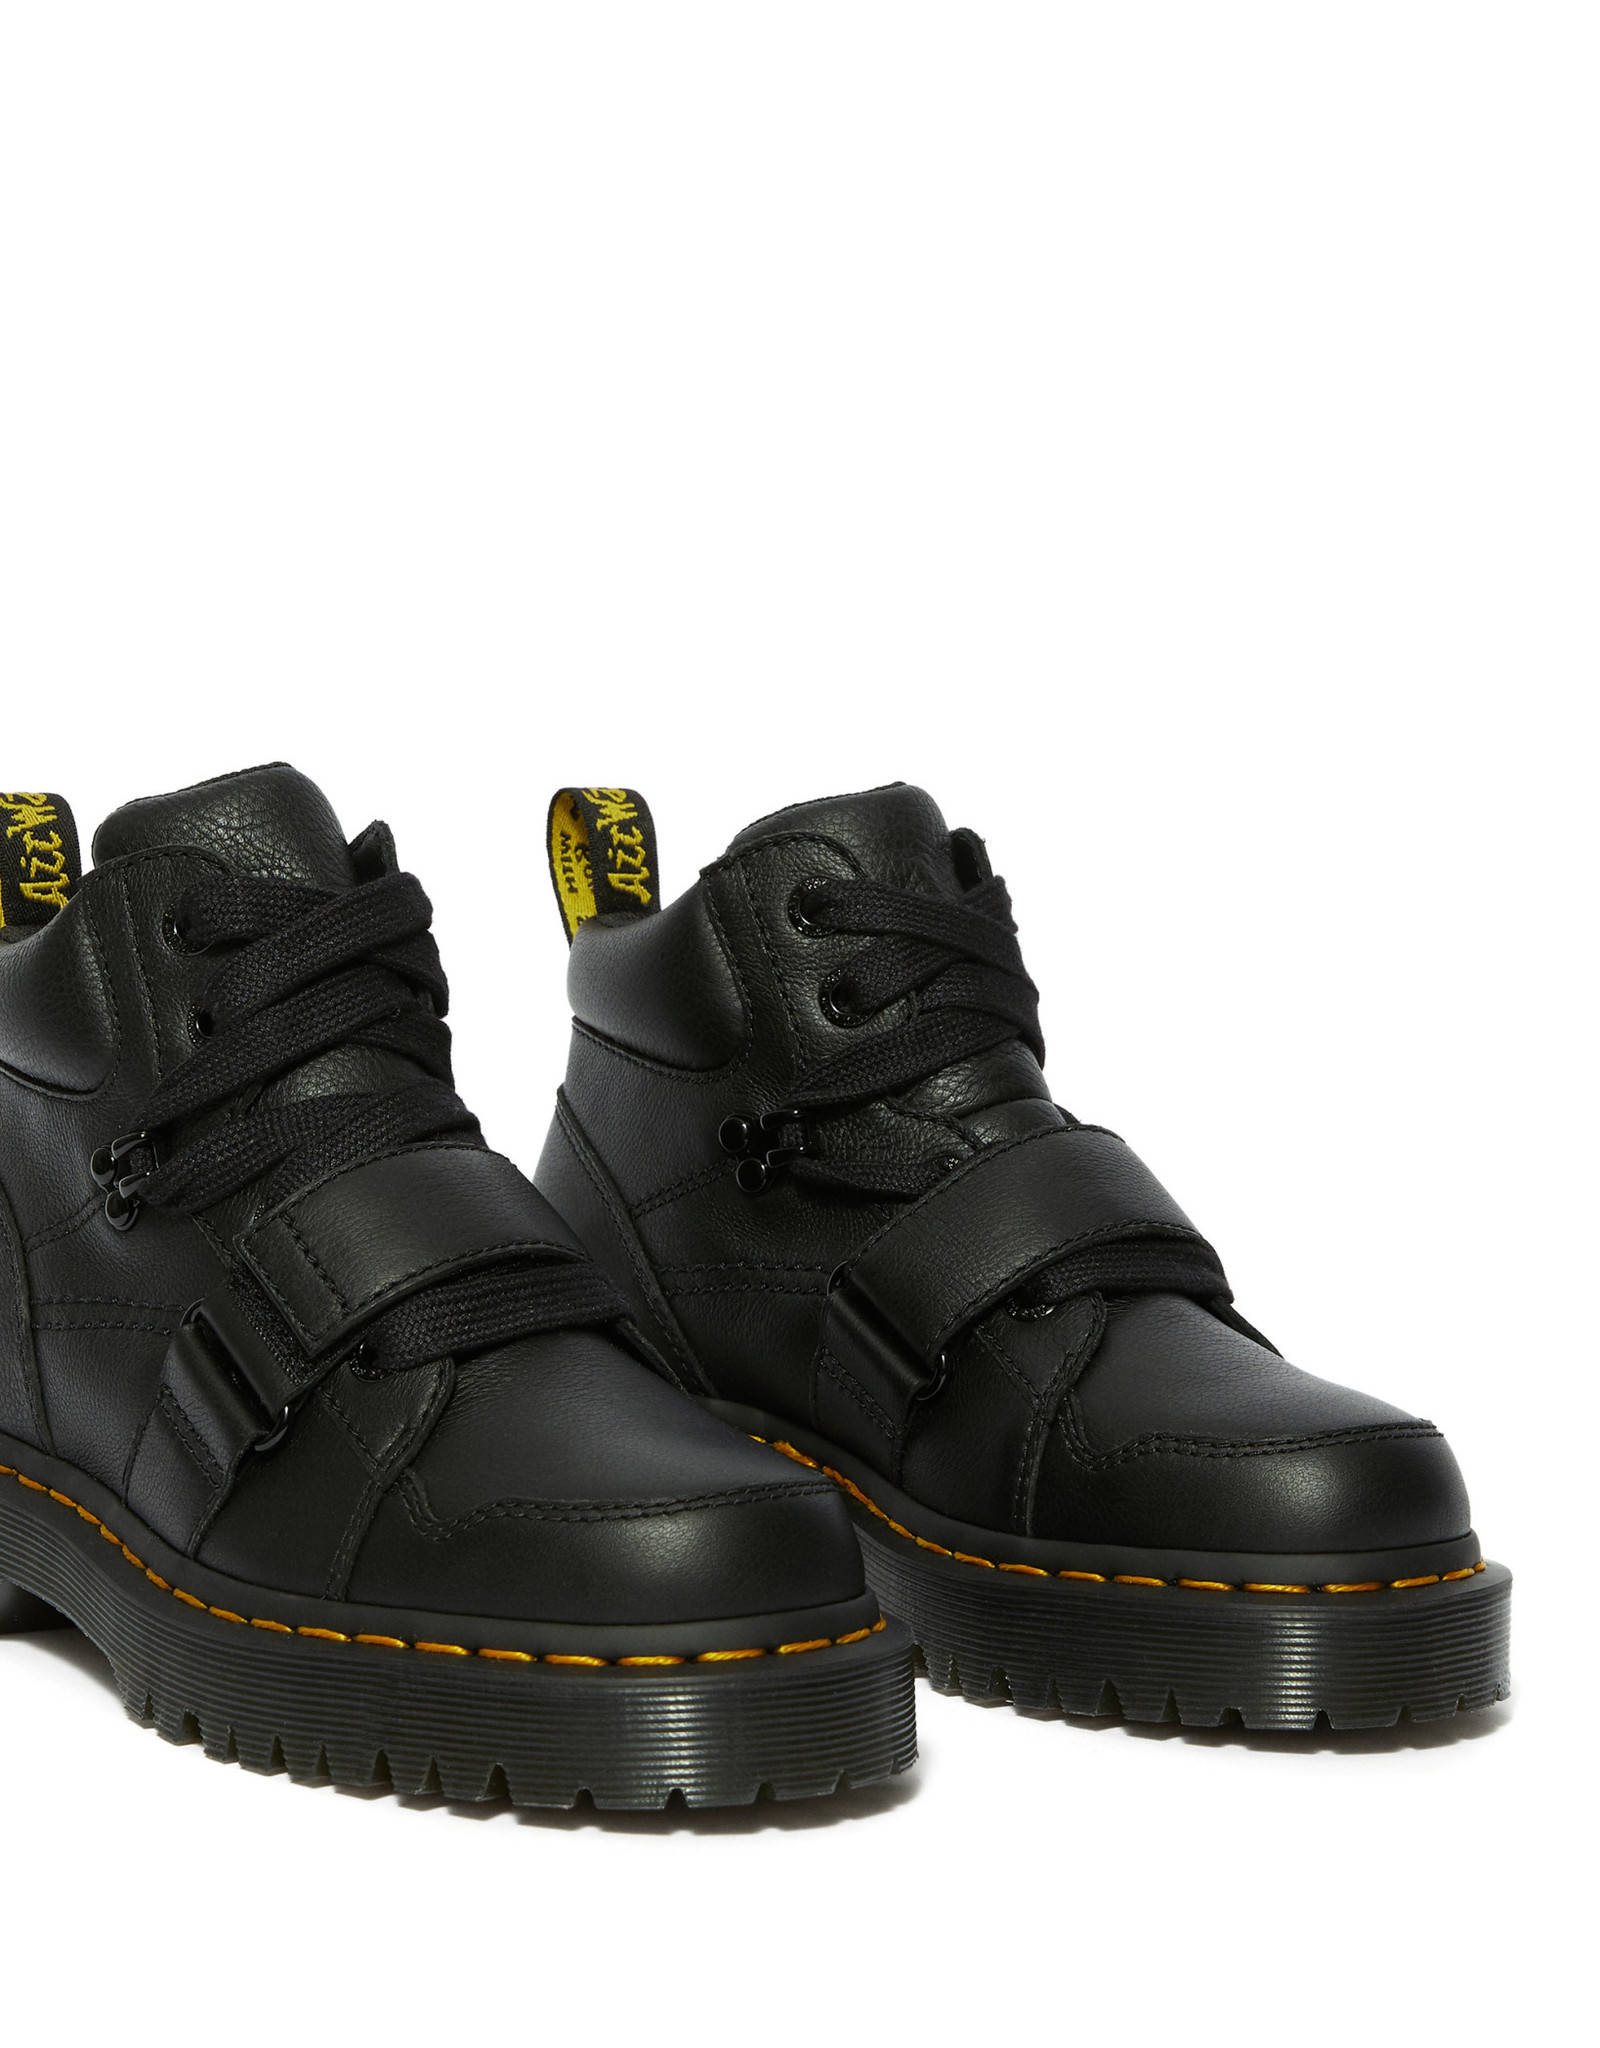 DR. MARTENS ZUMA II BLACK VIRGINIA 505BV-R25713001